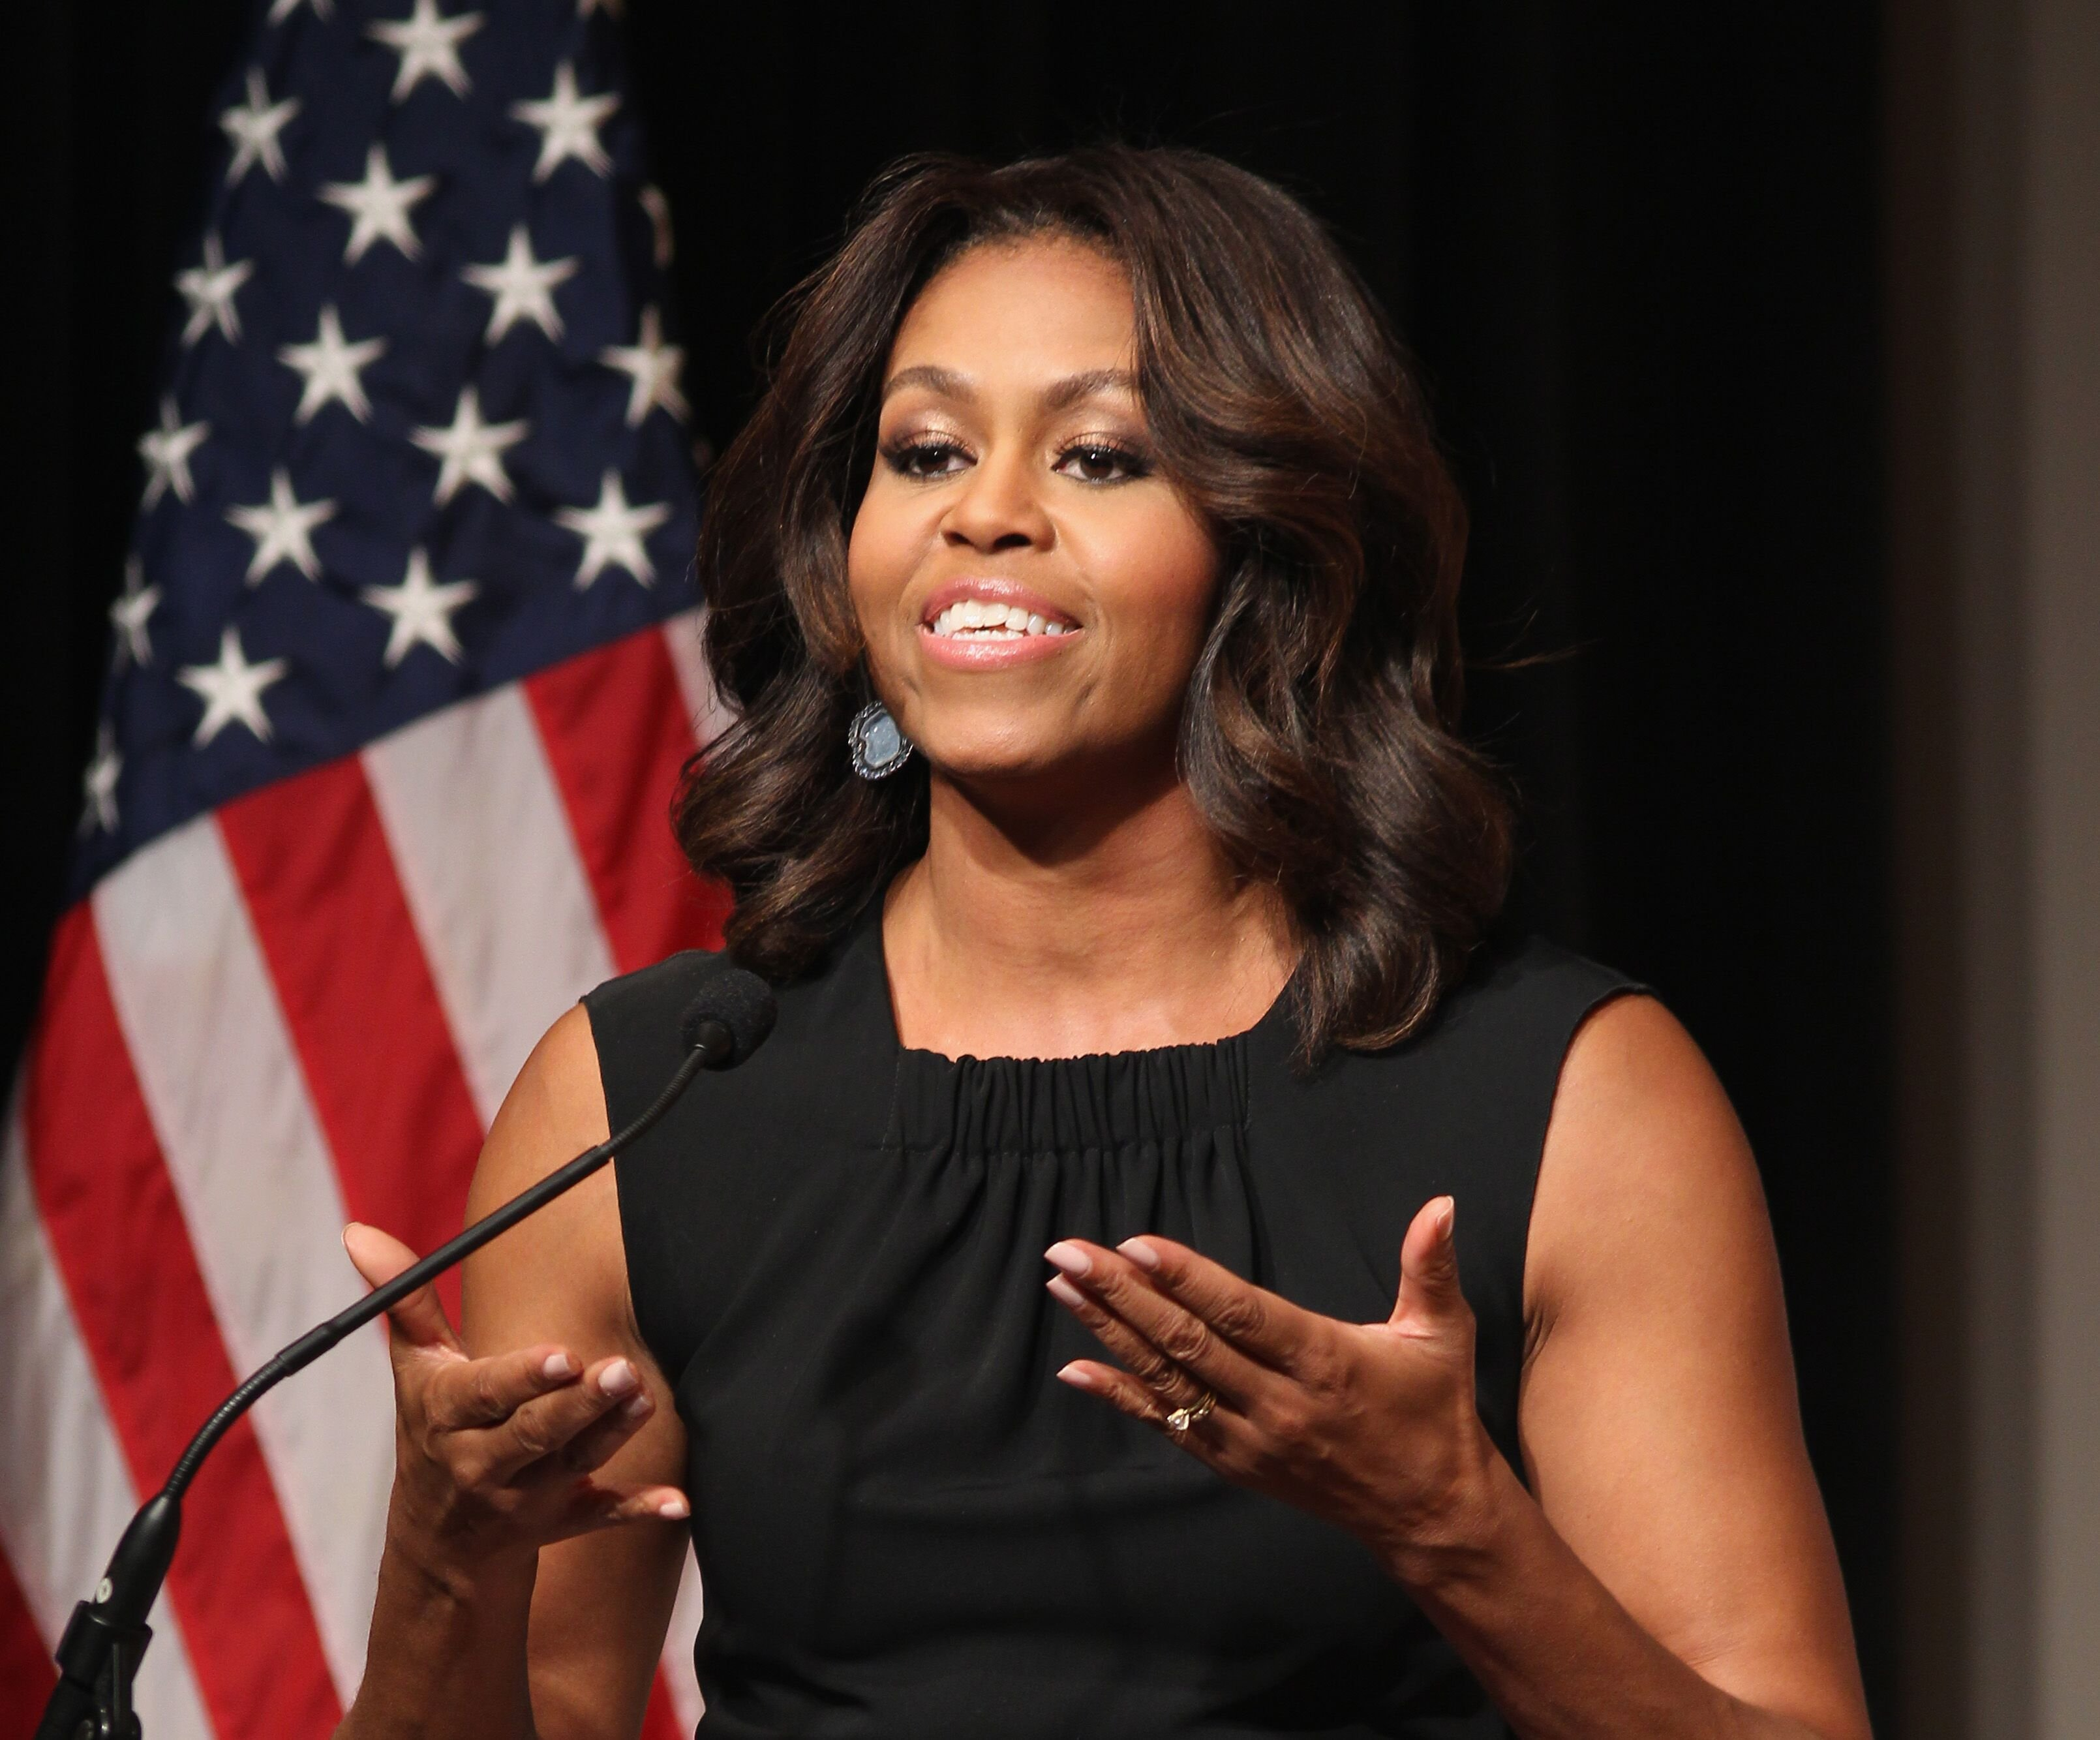 First Lady of the United States Michelle Obama speaks on stage at the Women Veterans Career Development Forum at Women in Military Service for America Memorial on November 10, 2014 in Arlington, Virginia. | Photo: Getty Images